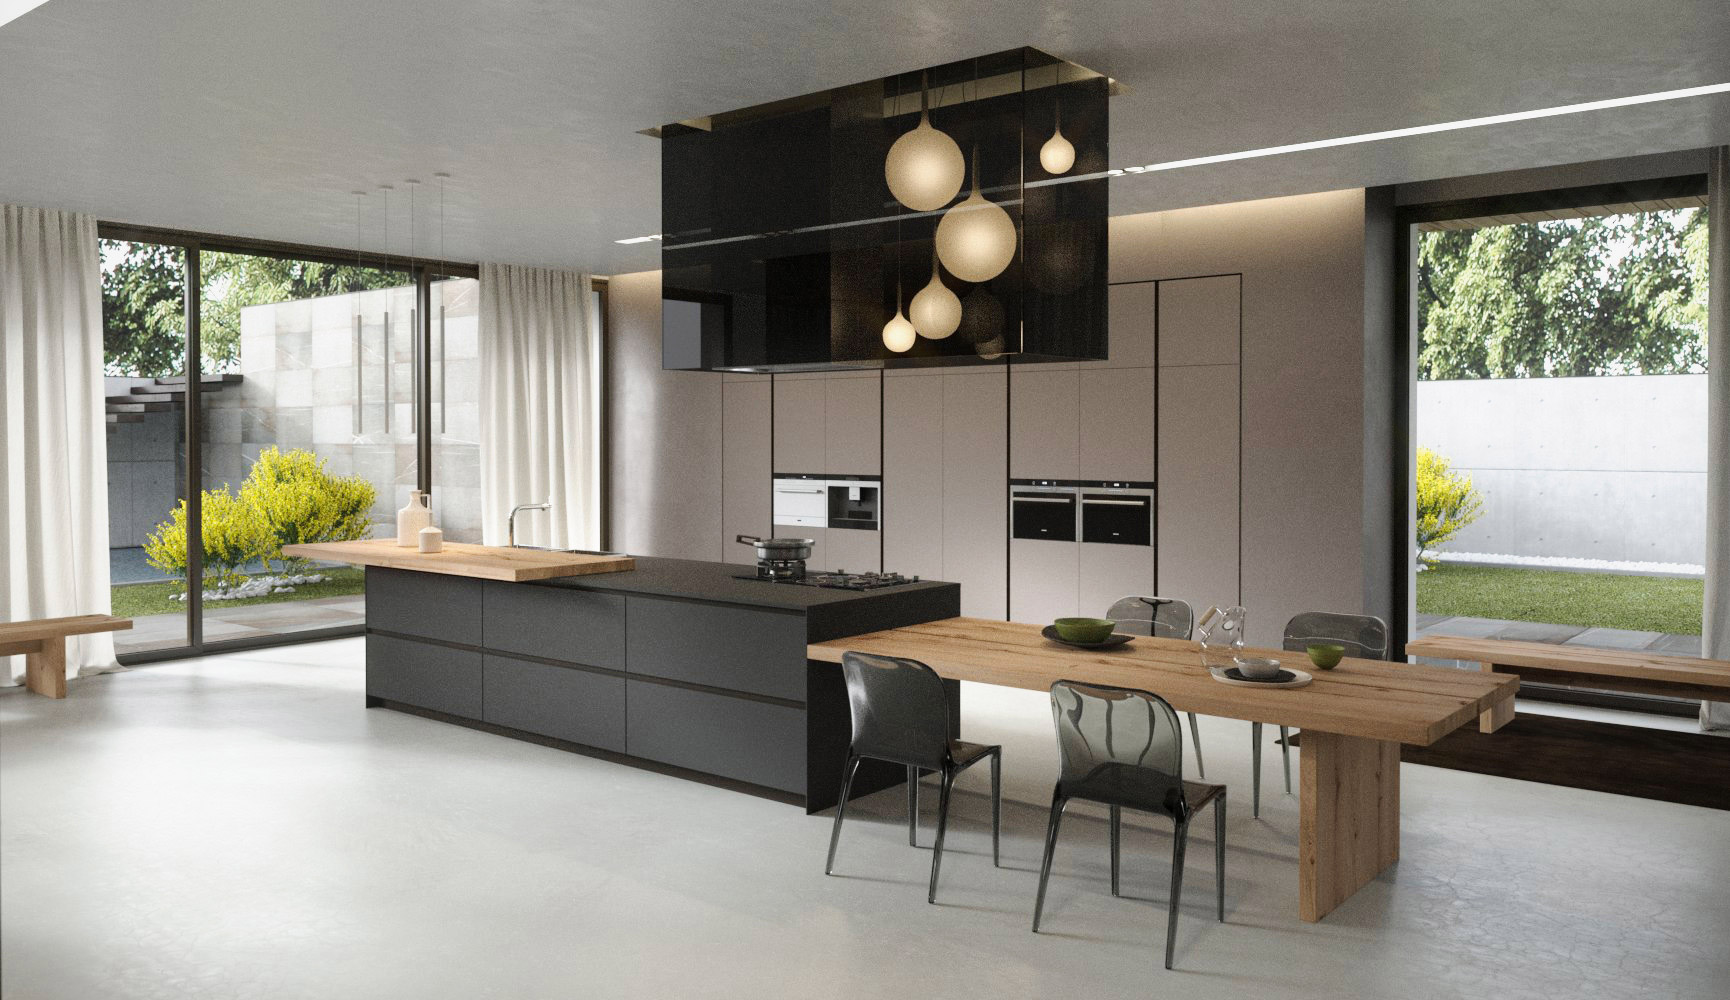 Kitchen Design Awards Heights Minosa Design Award Kbdi Kitchen Large Of 2013 Kitchen .